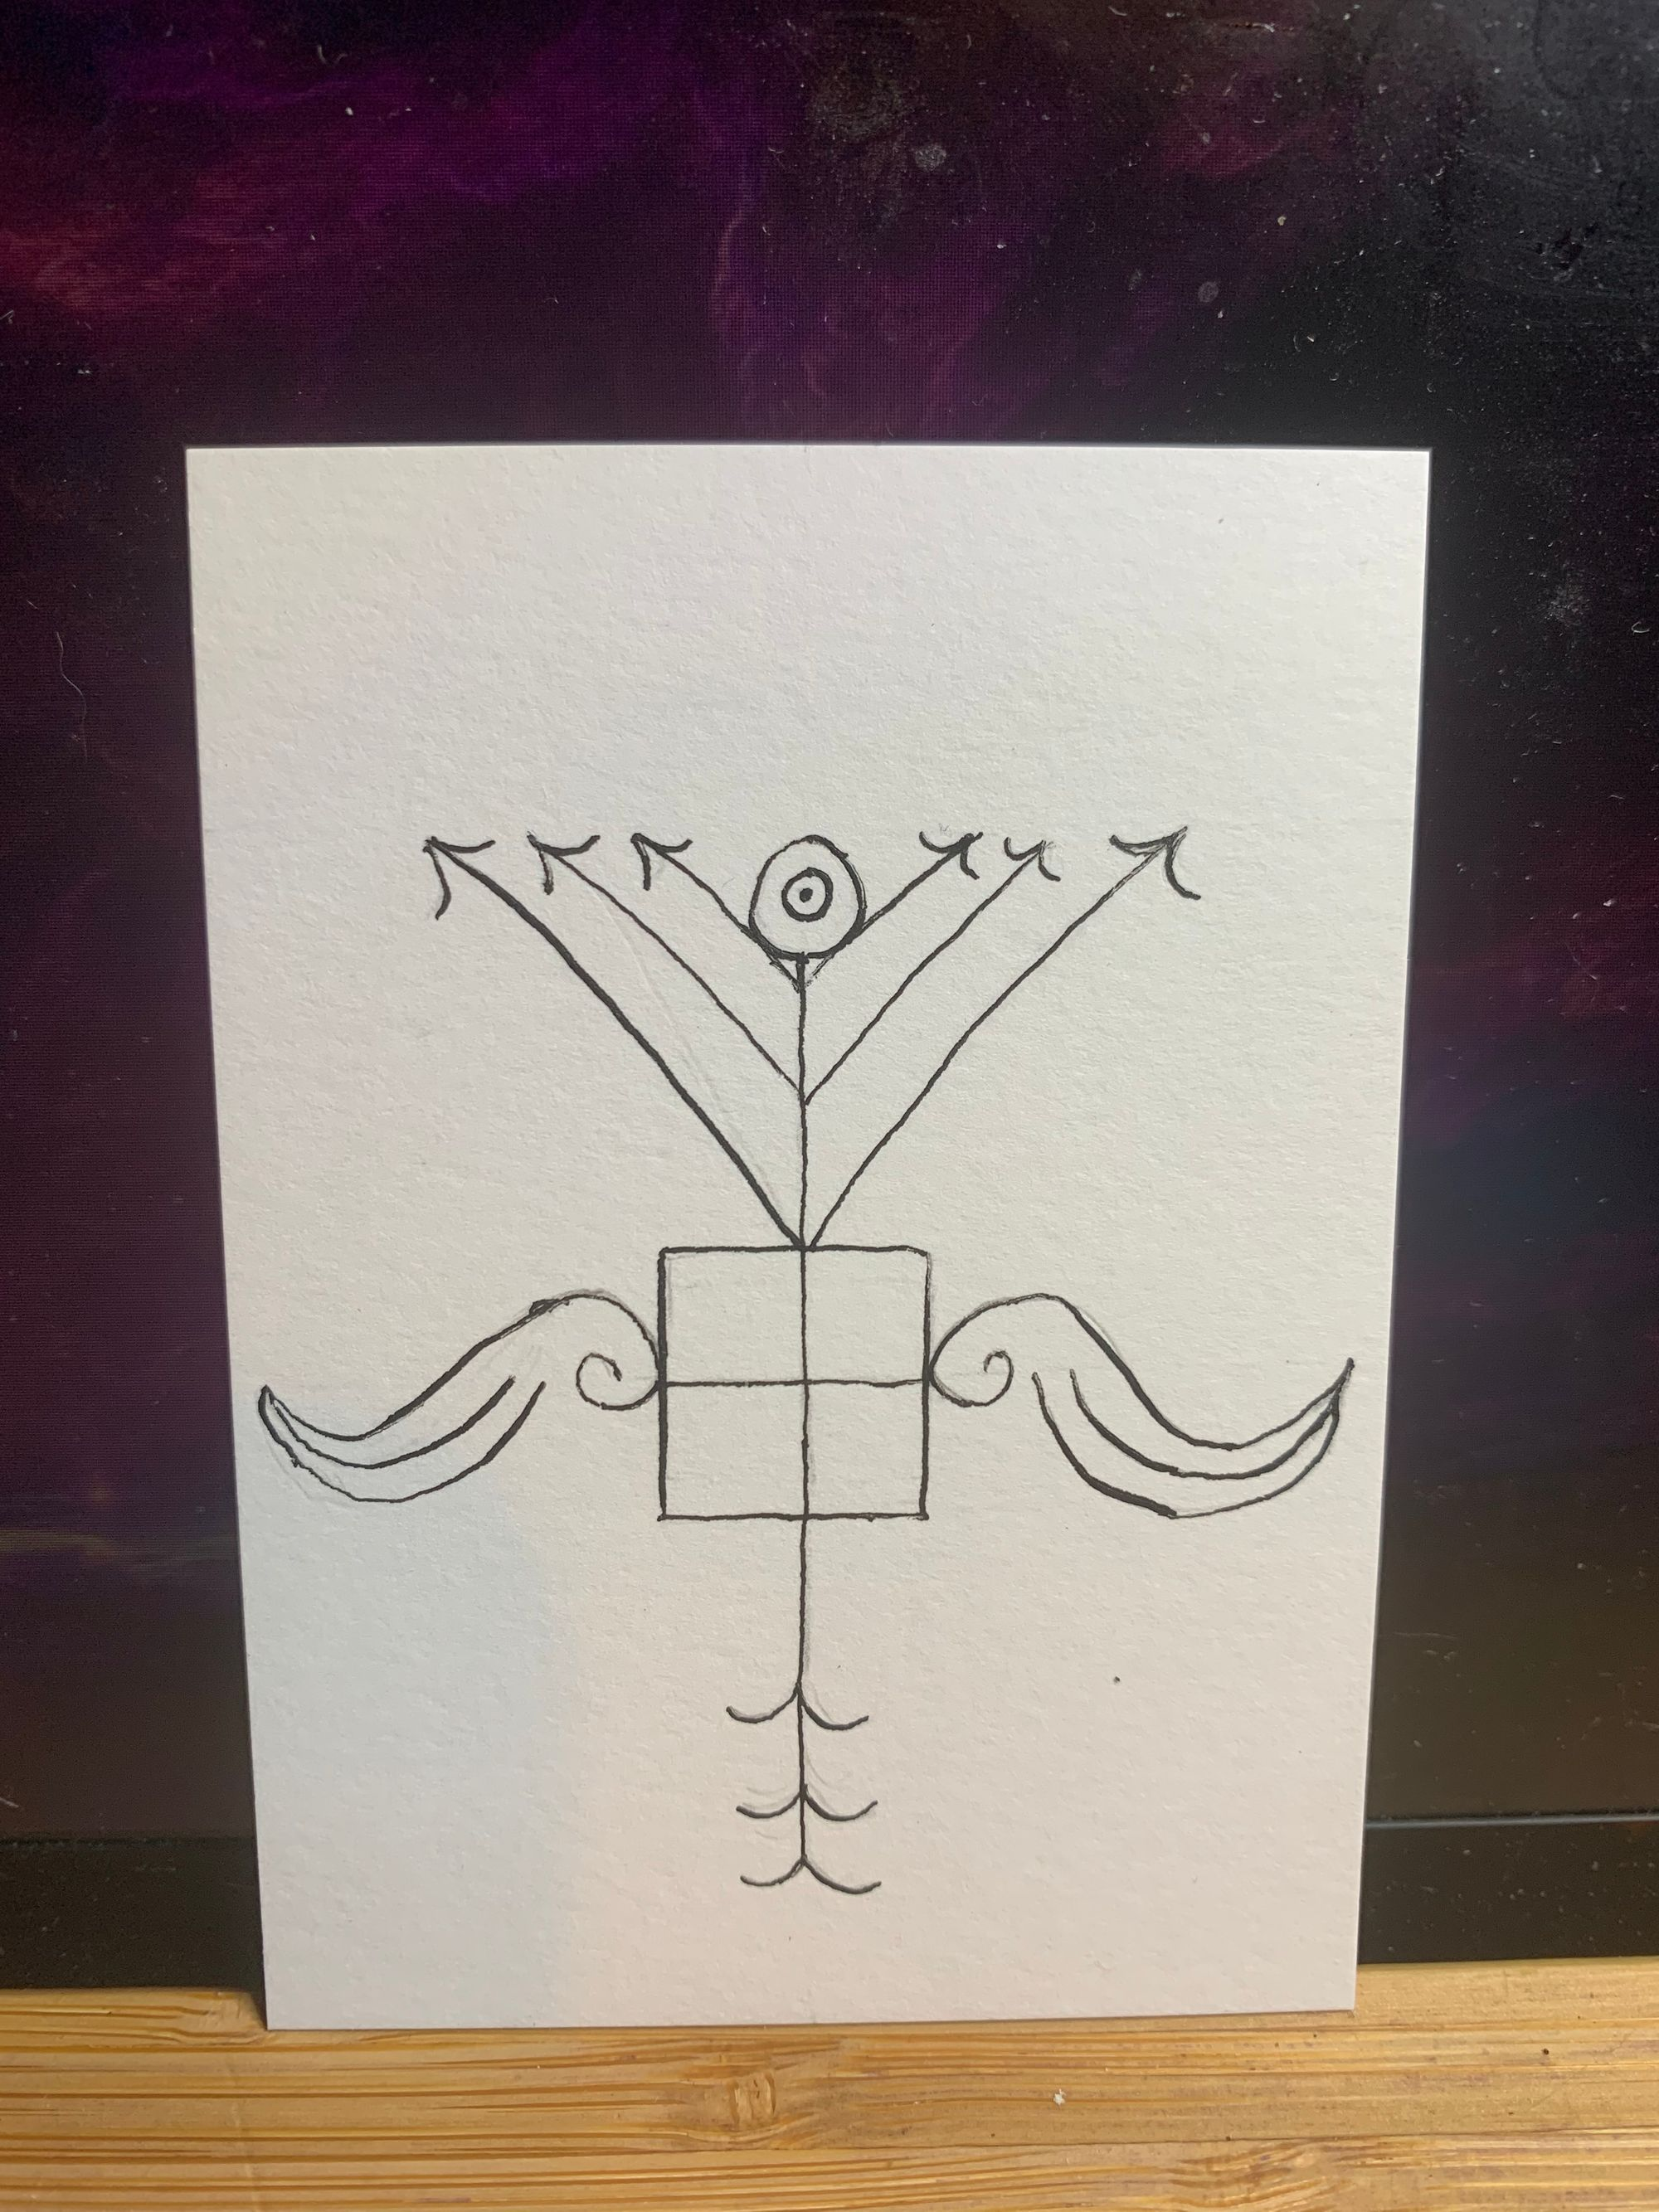 Sigil for Focus, Drive, and Study